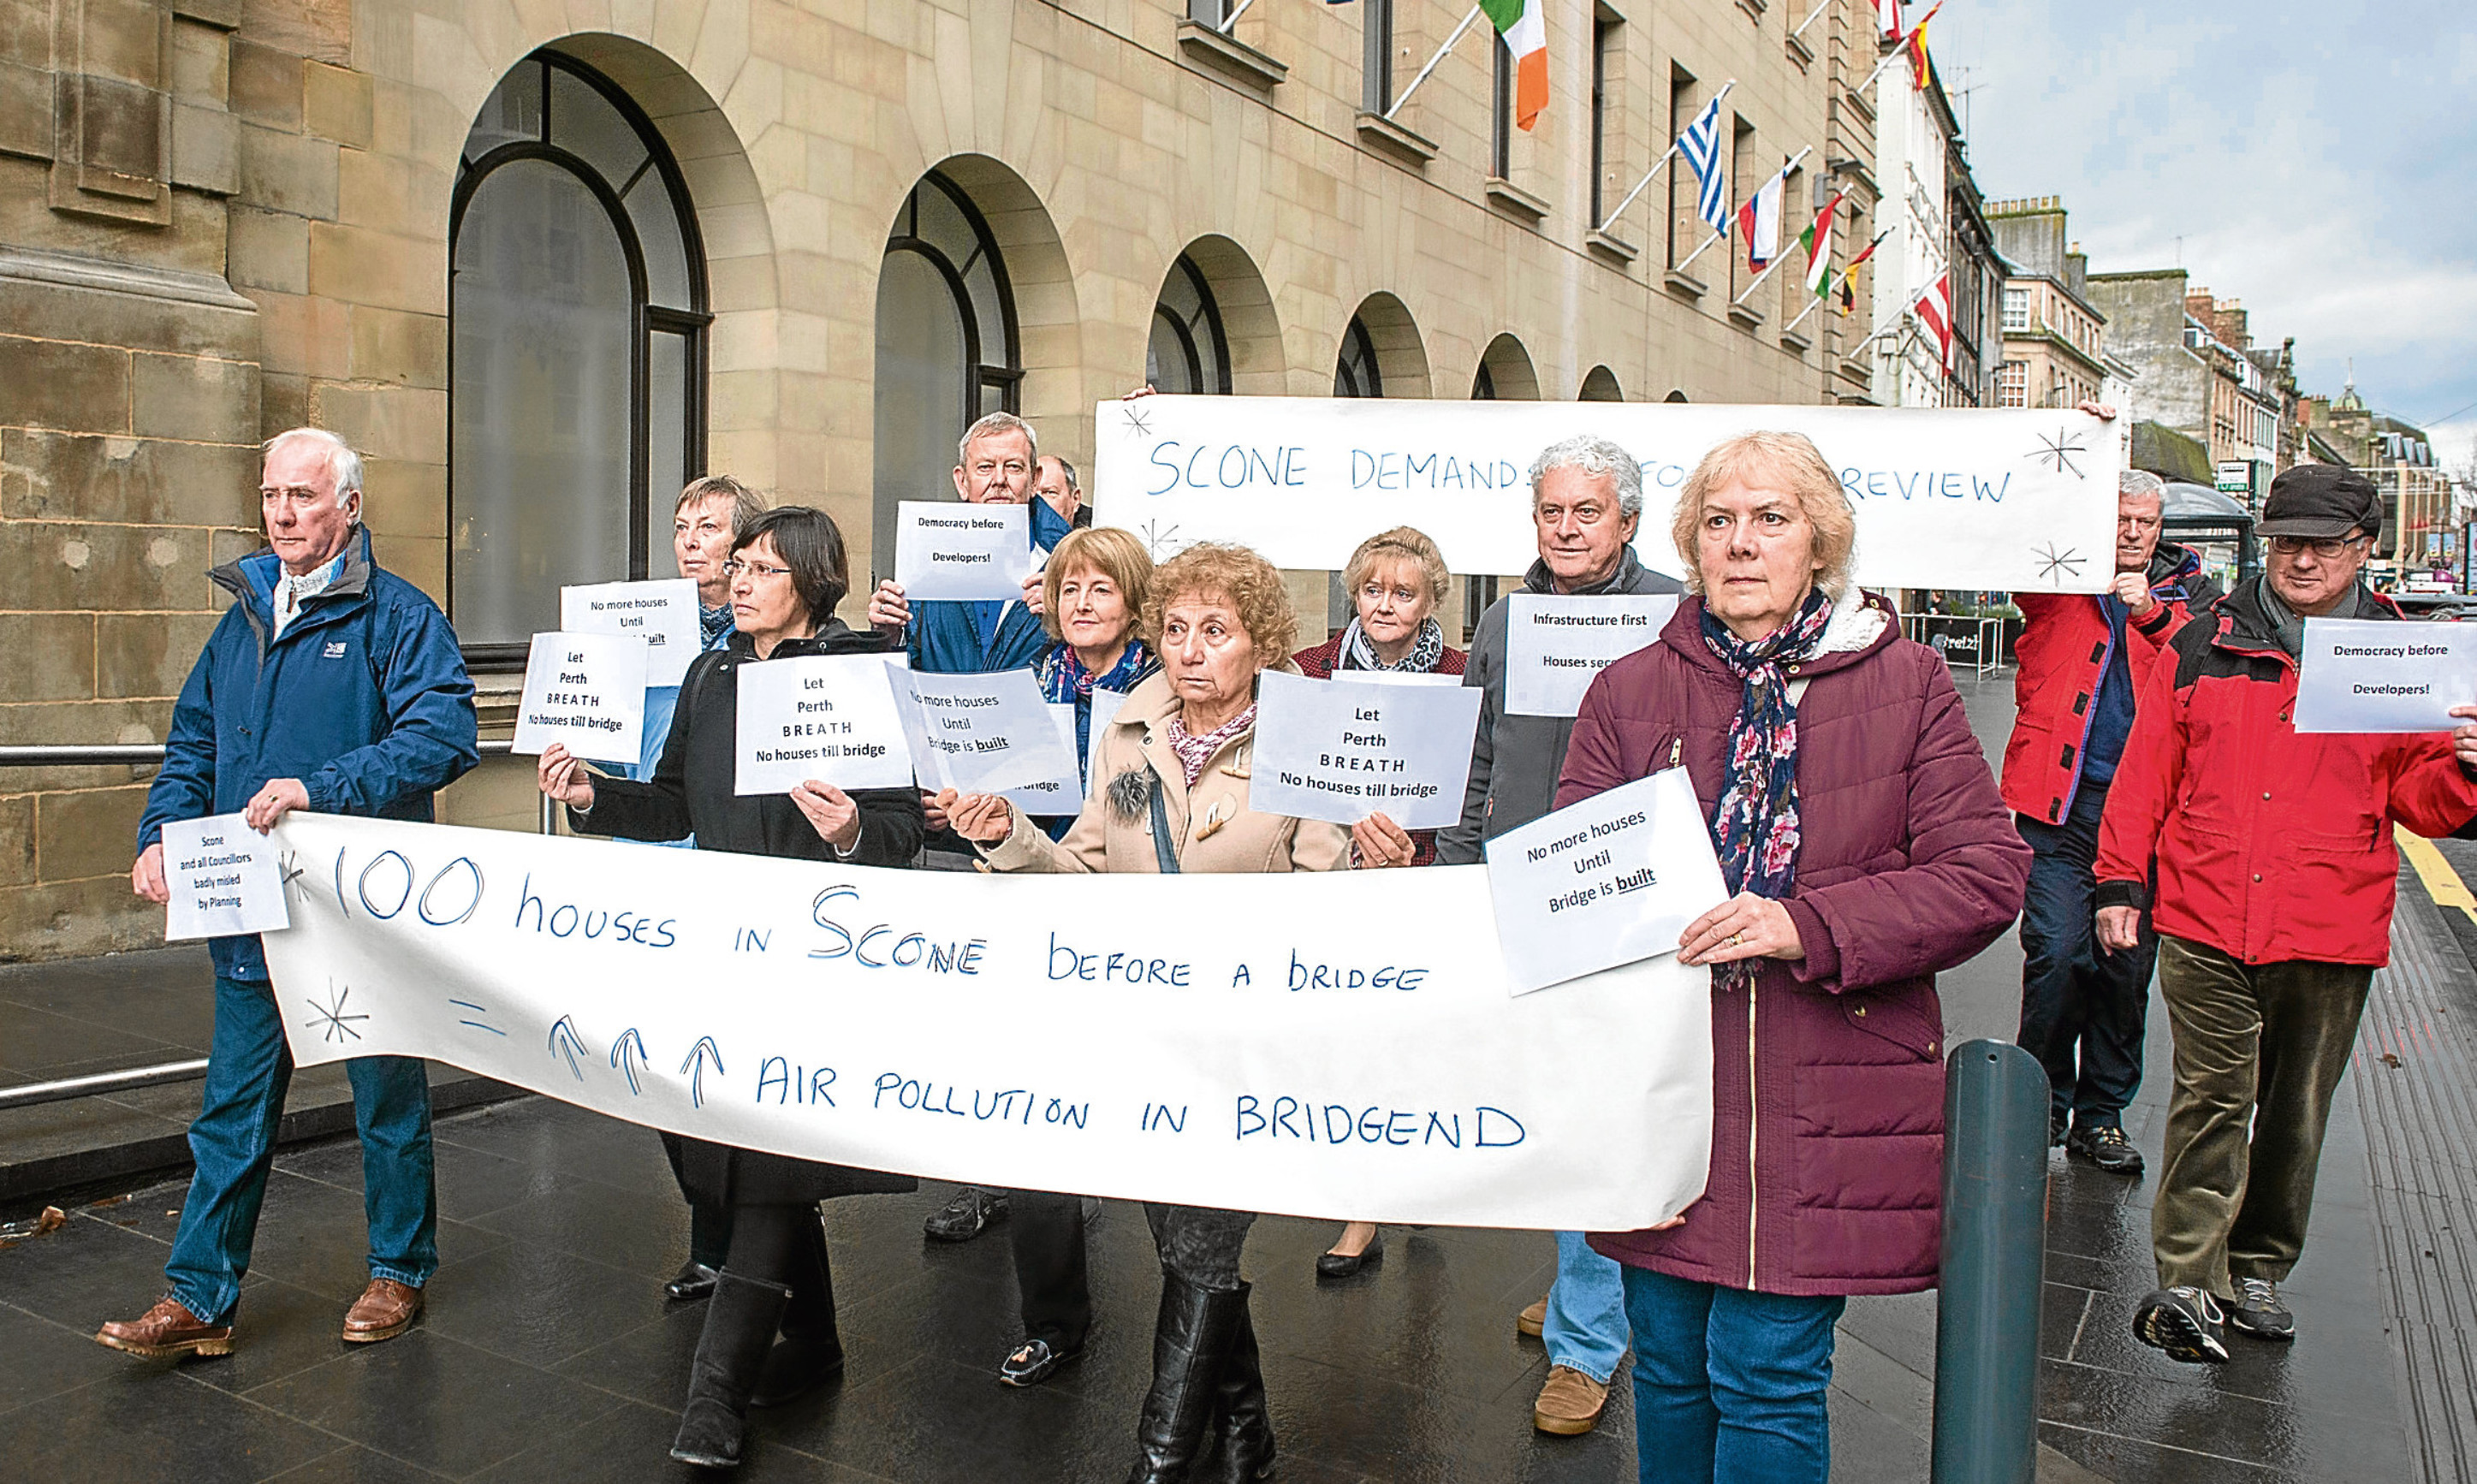 Scone residents protest about the housing proposal outside Perth and Kinross Council offices.